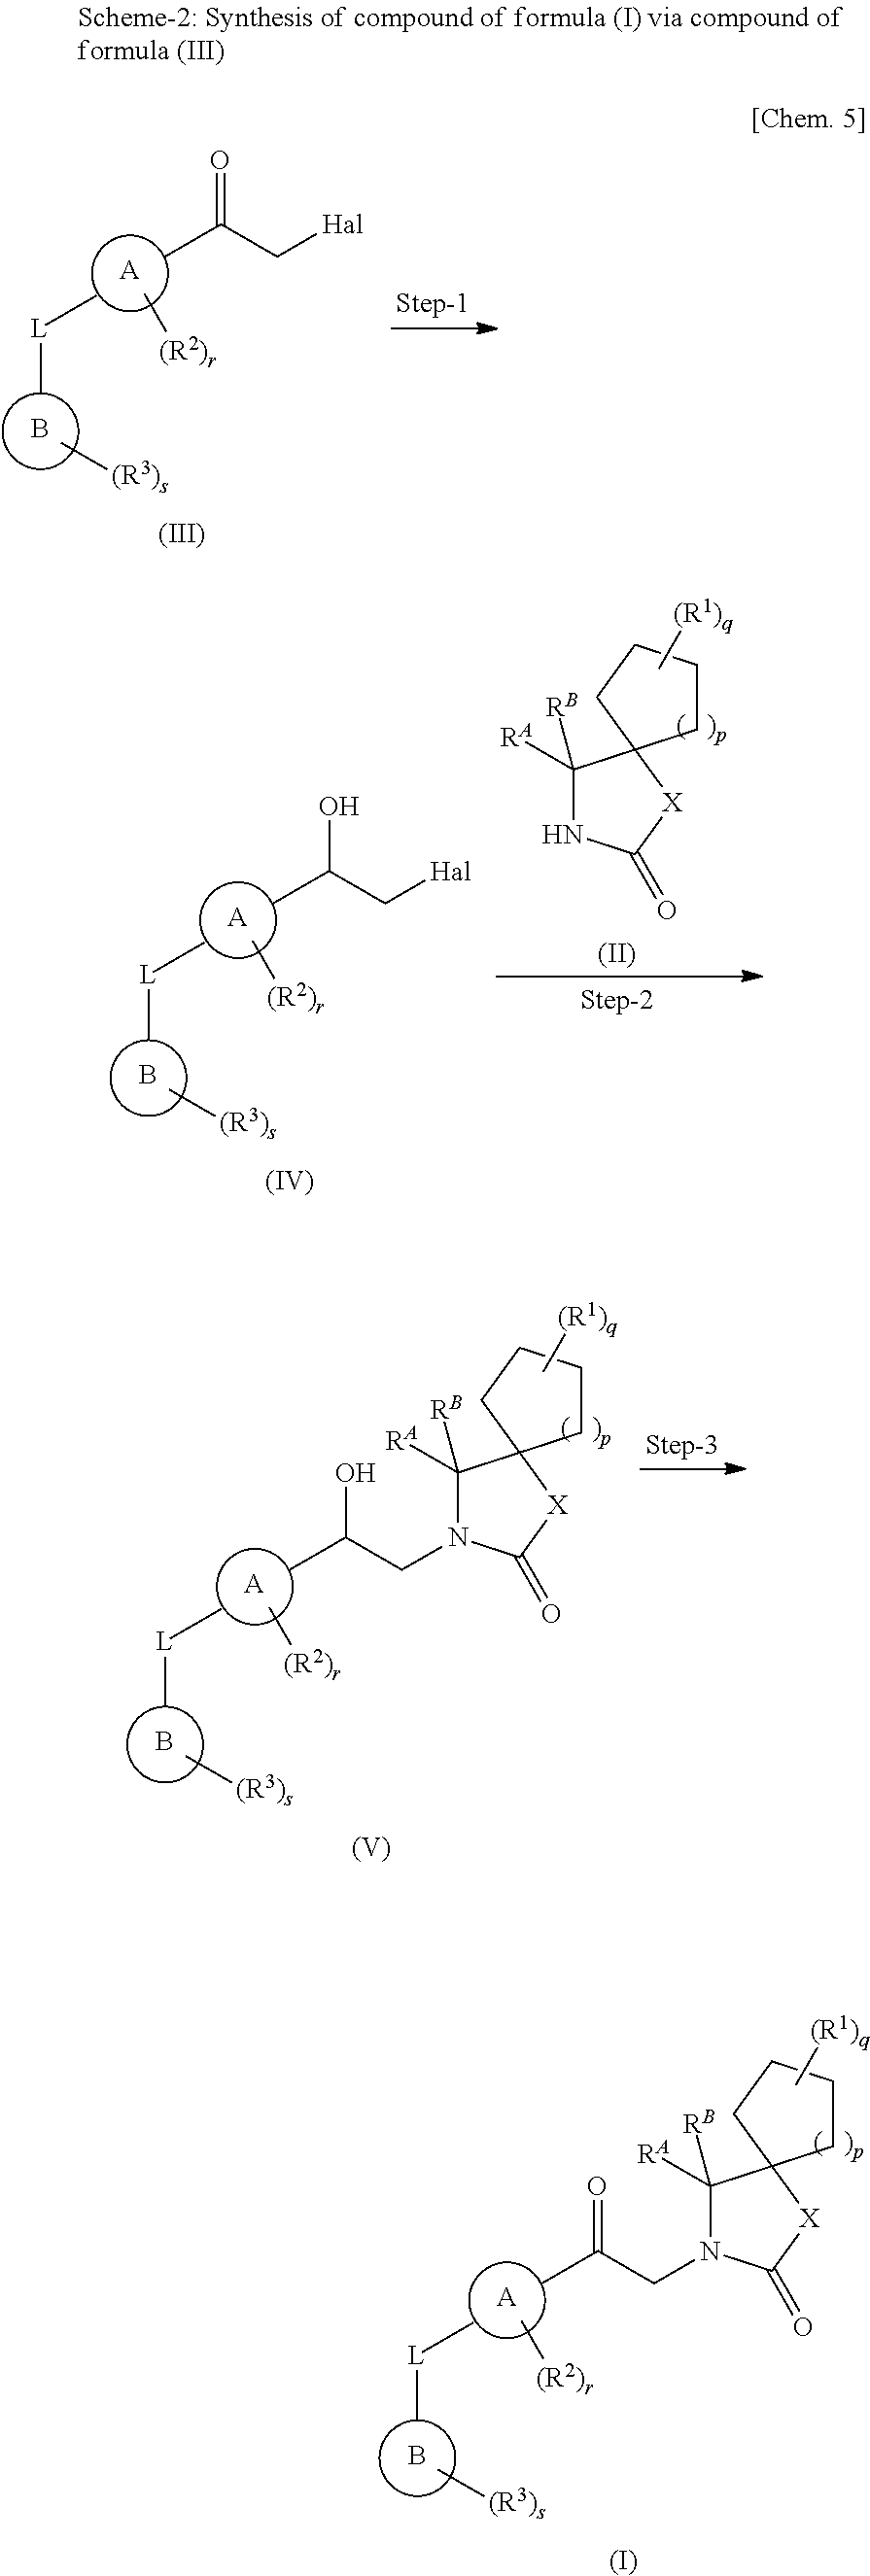 us20170002016a1 azaspiro derivatives as trpm8 antagonists 7.3 Diesel IPR Ford 2002 figure us20170002016a1 20170105 c00006